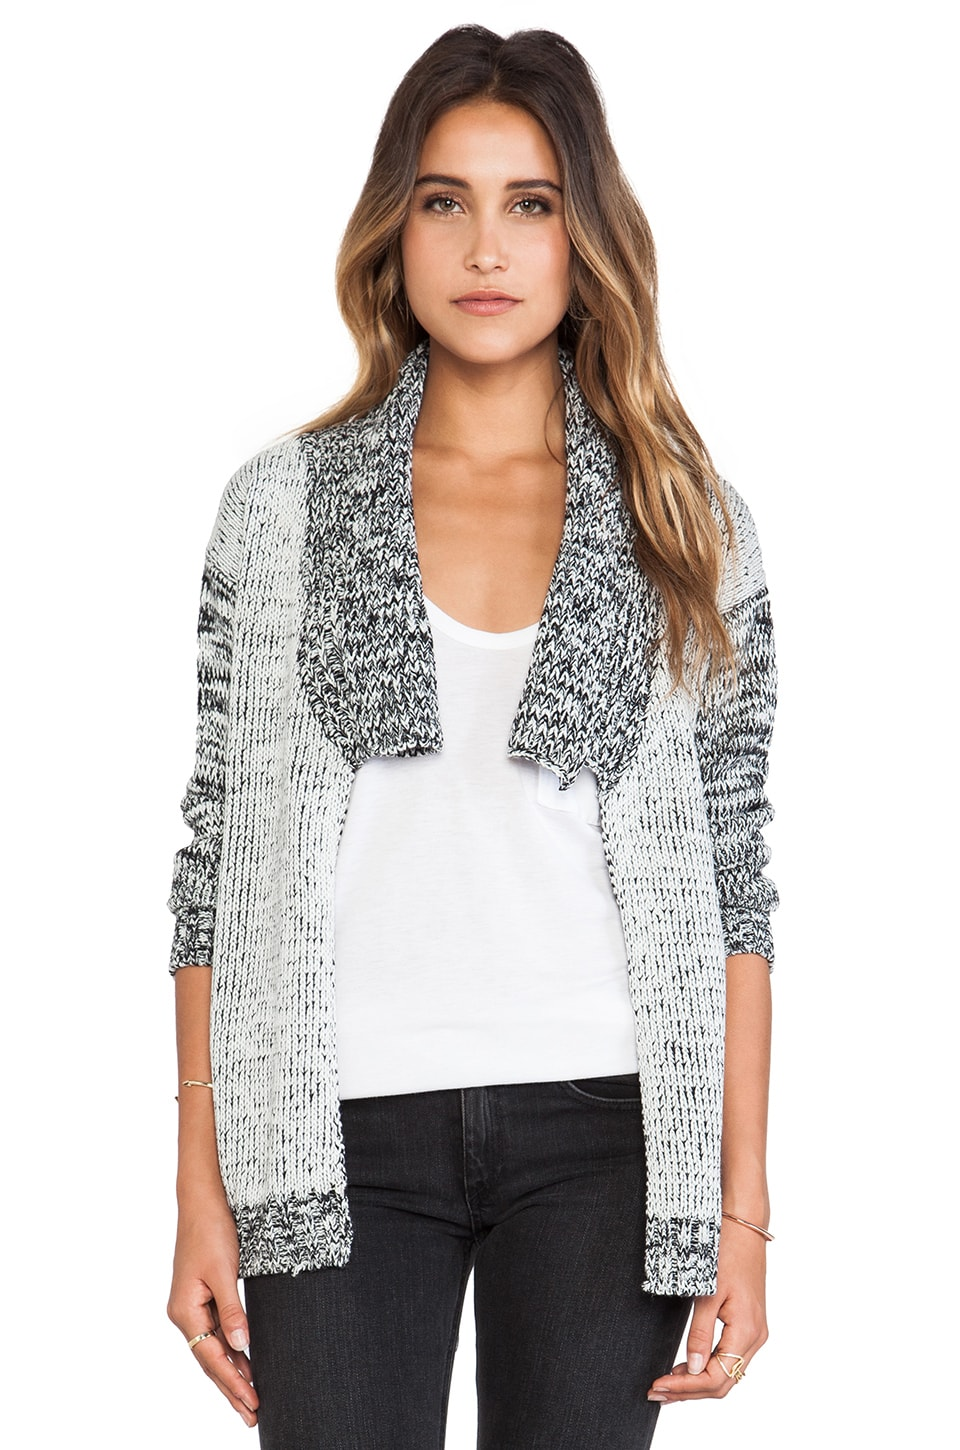 May. Spectator Cardigan in Black & White Mix